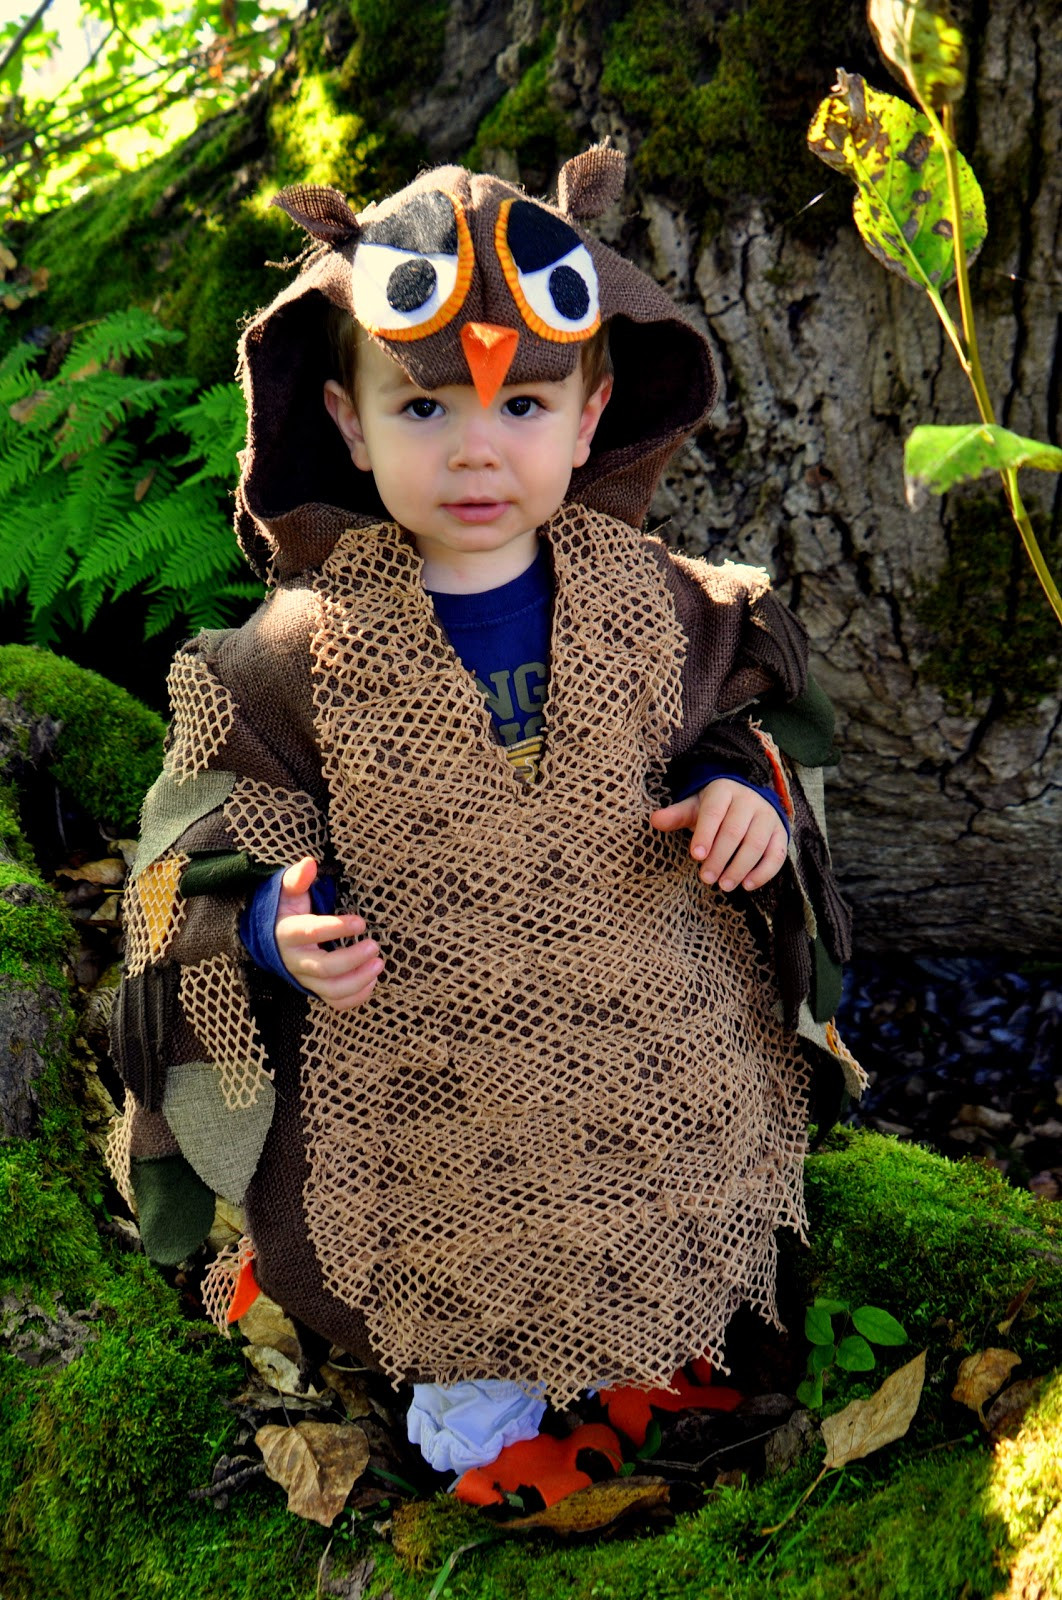 Best ideas about Easy DIY Kids Costumes . Save or Pin SweeterThanSweets Cutest Handmade DIY Kids Halloween Now.